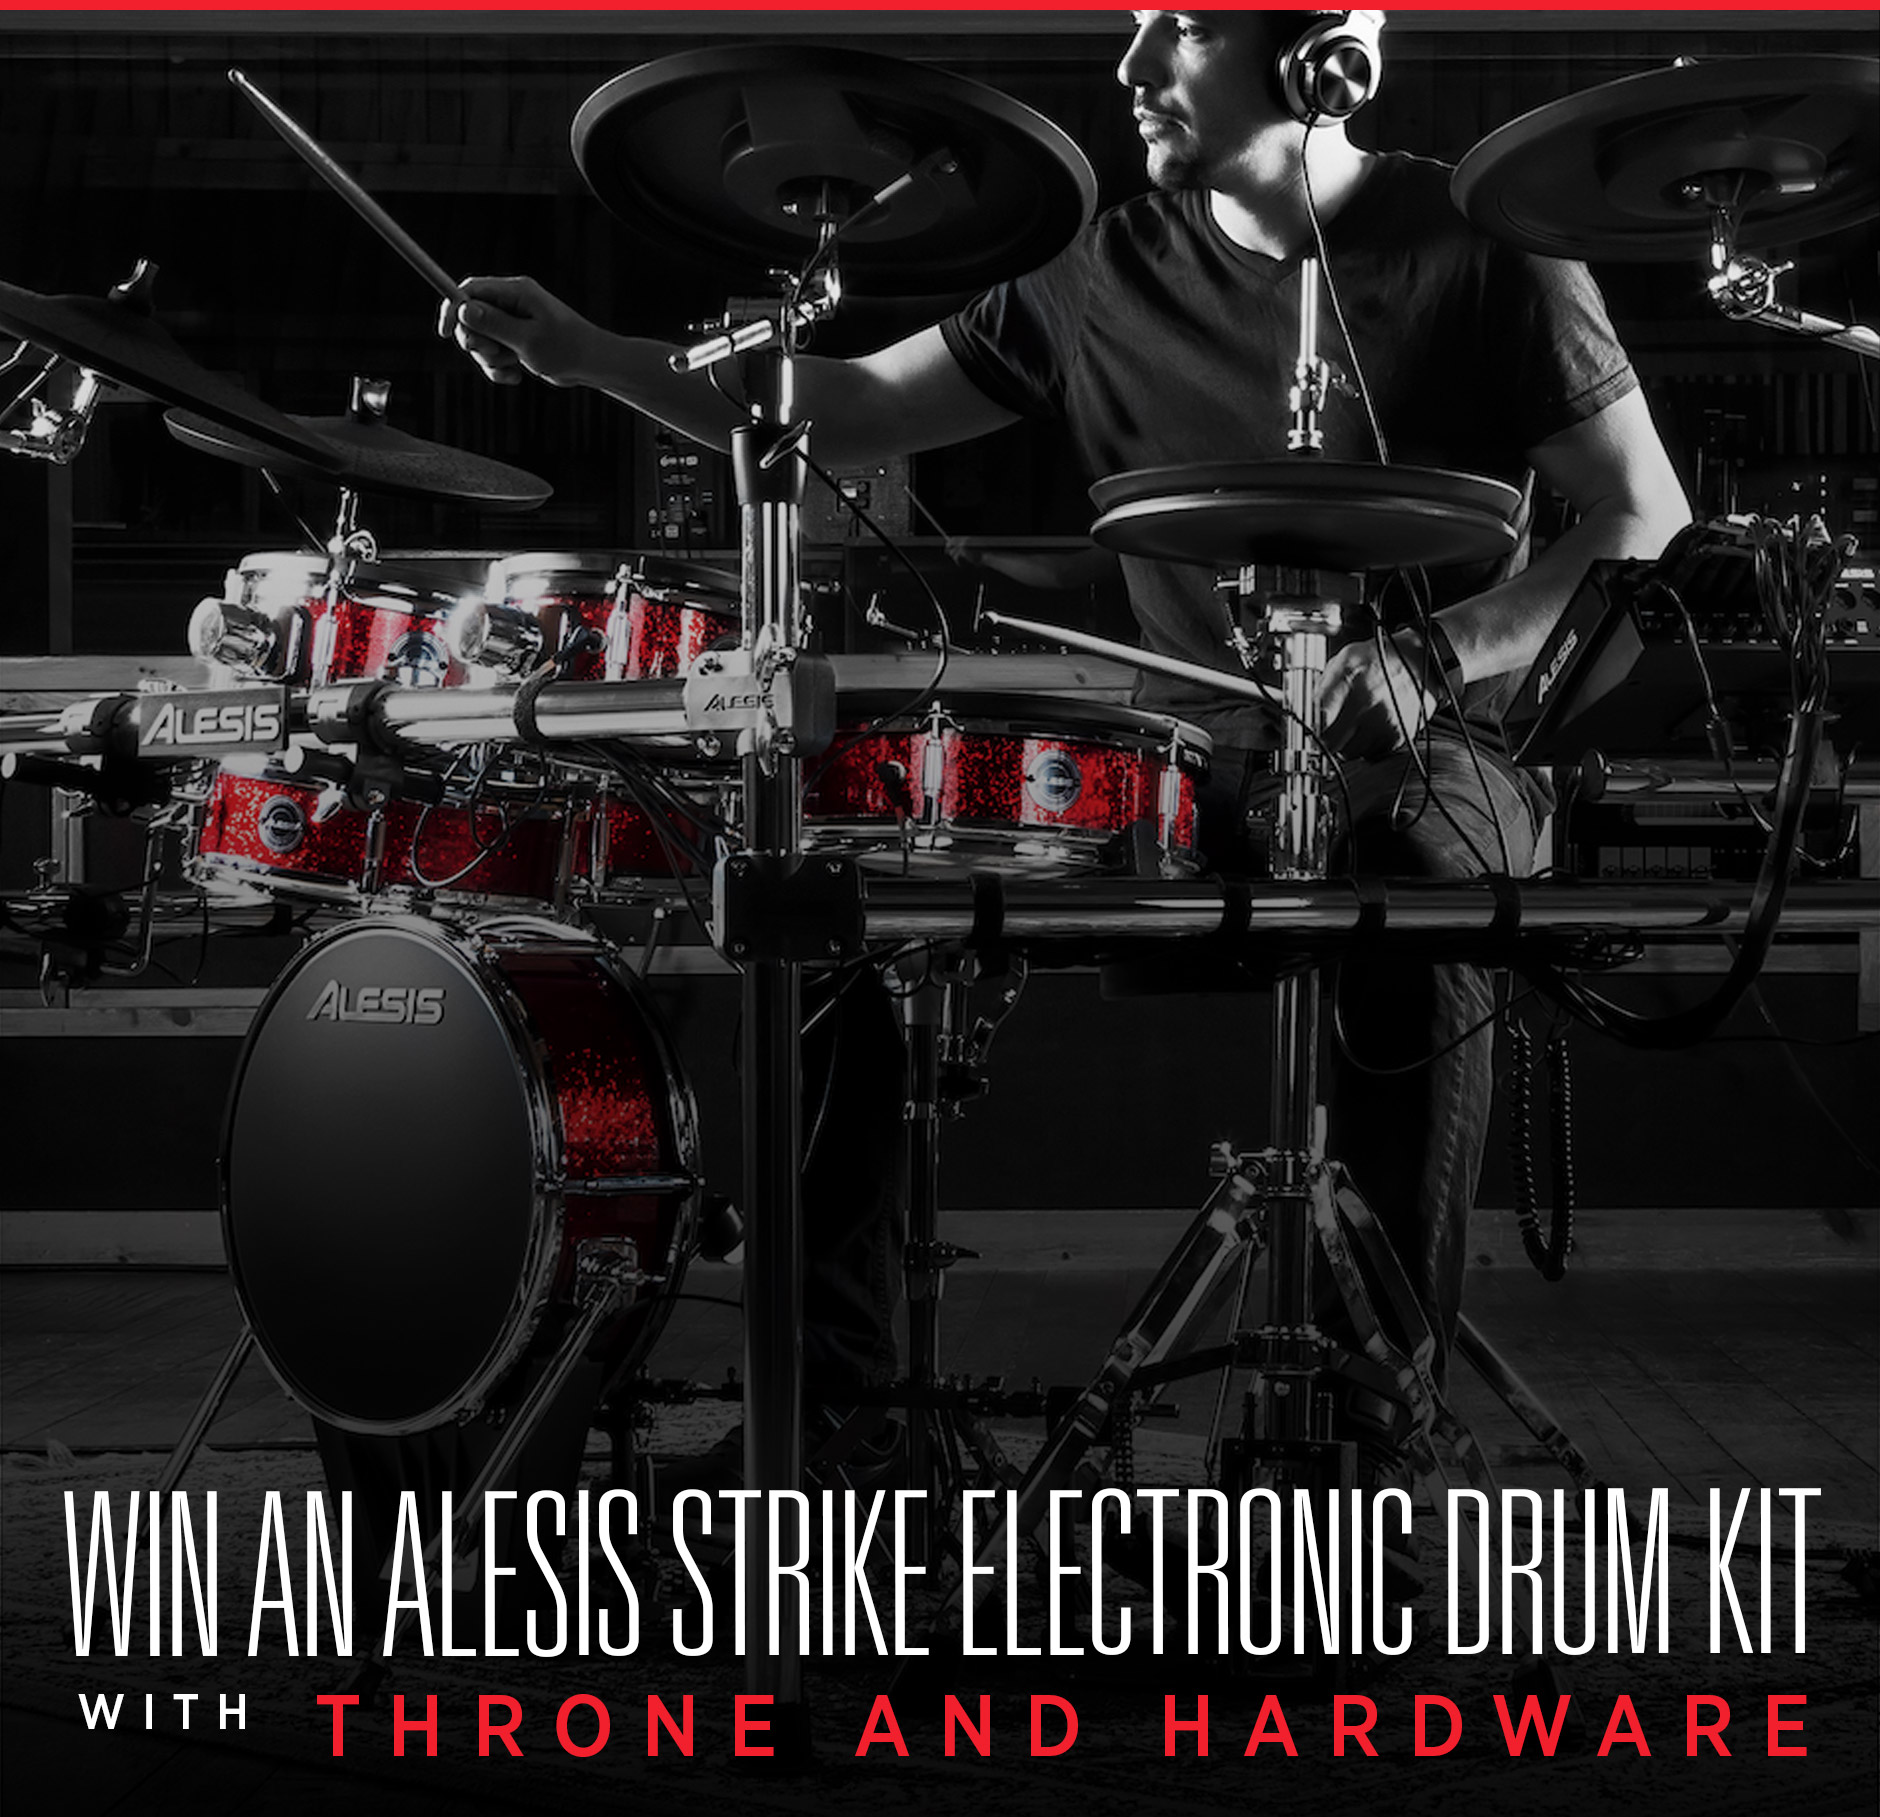 Alesis Strike Electronic Drum Kit with Throne and Hardware Giveaway